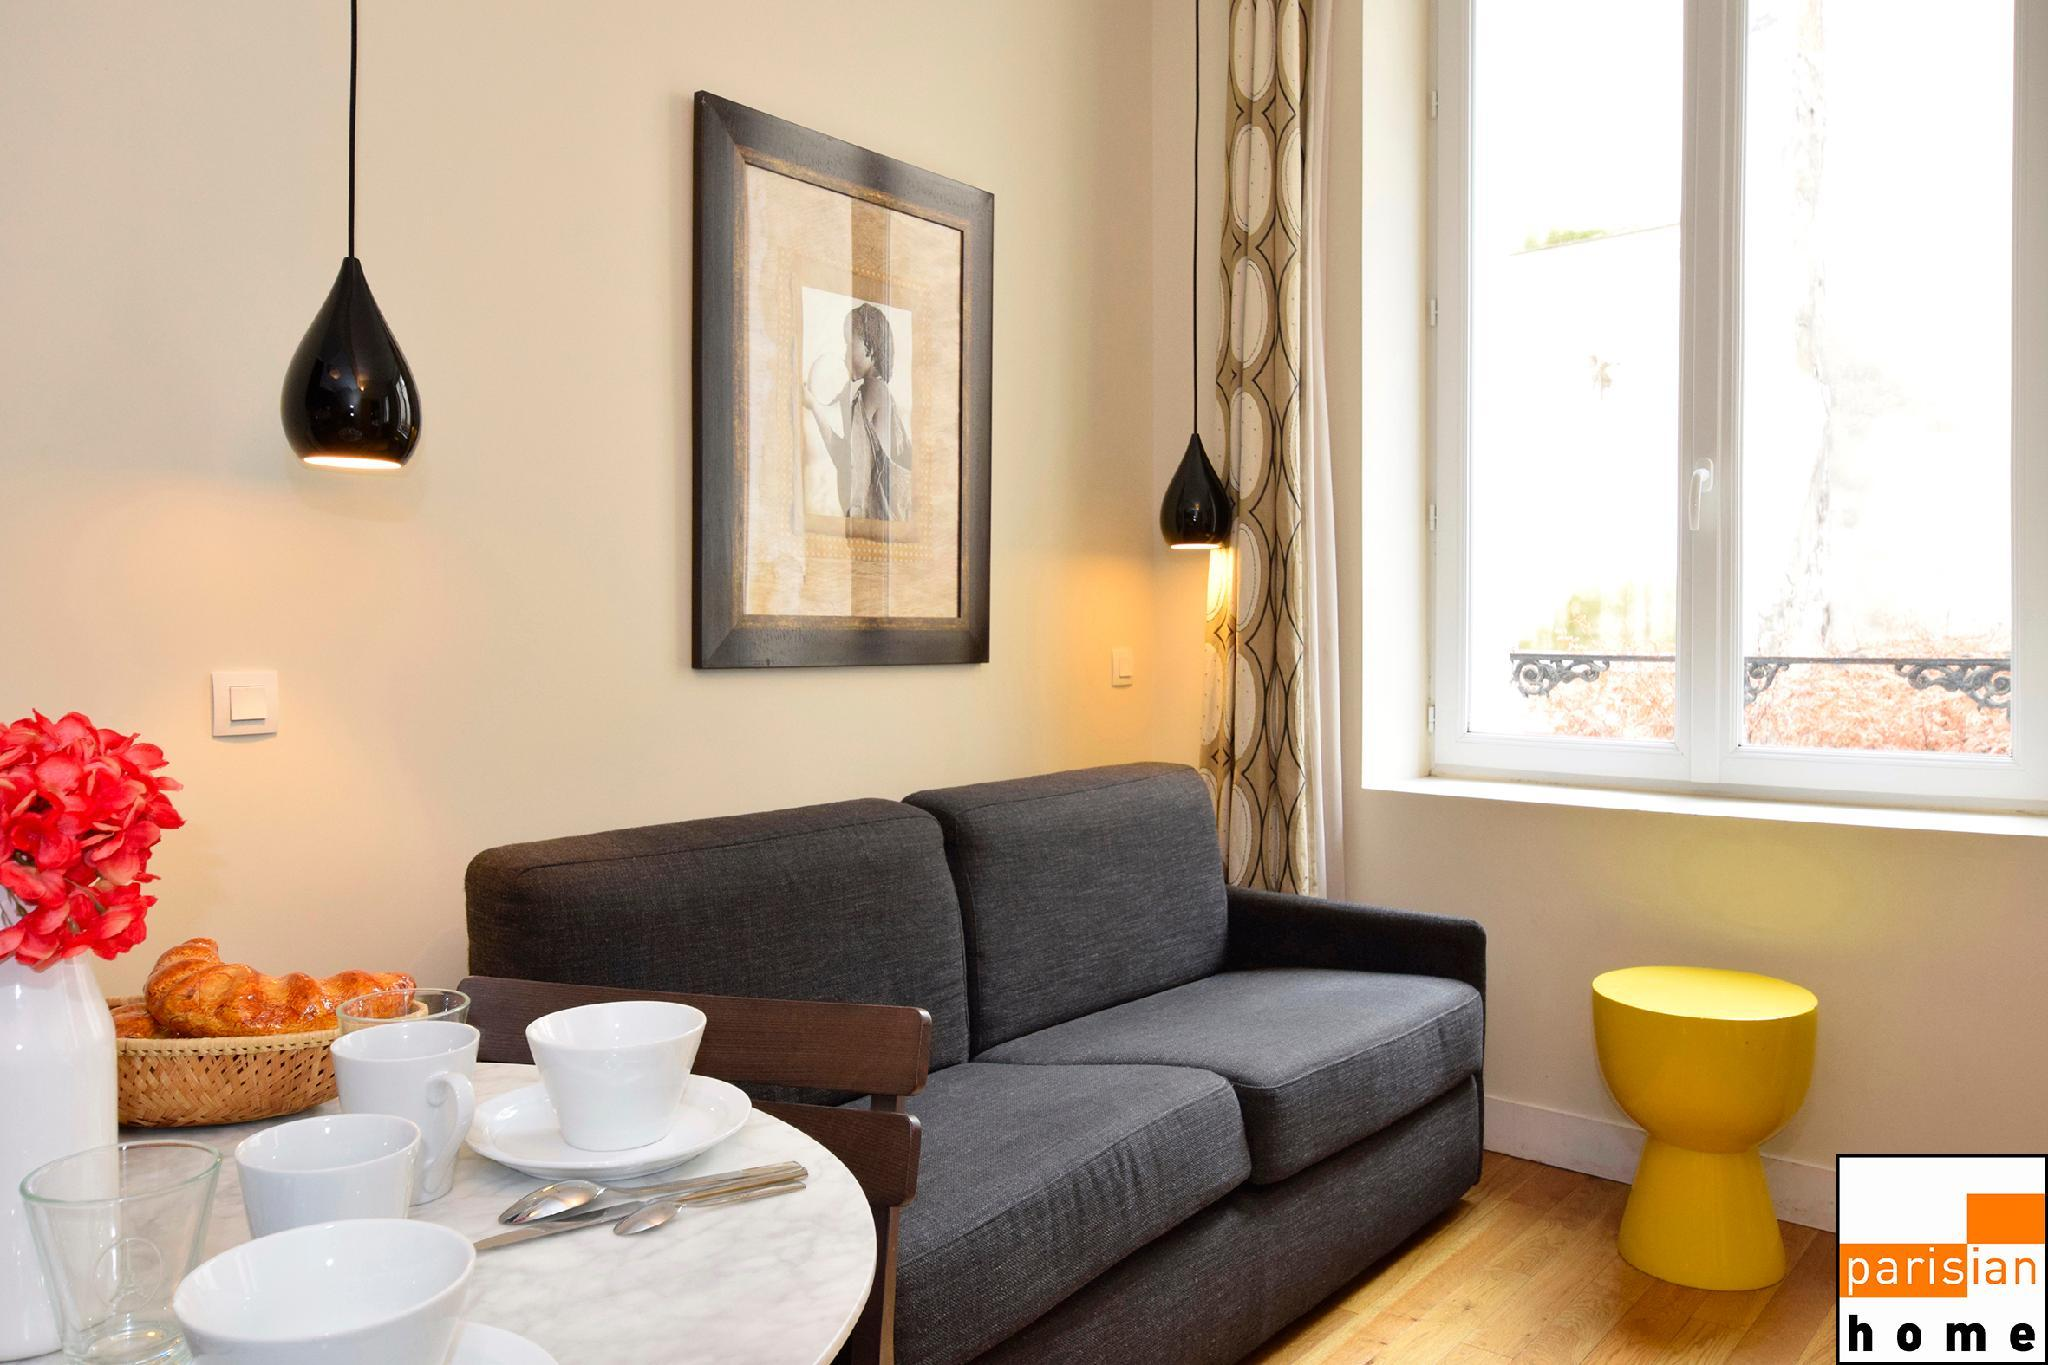 102201 - A charming setting for 4 people  in Montorgueil